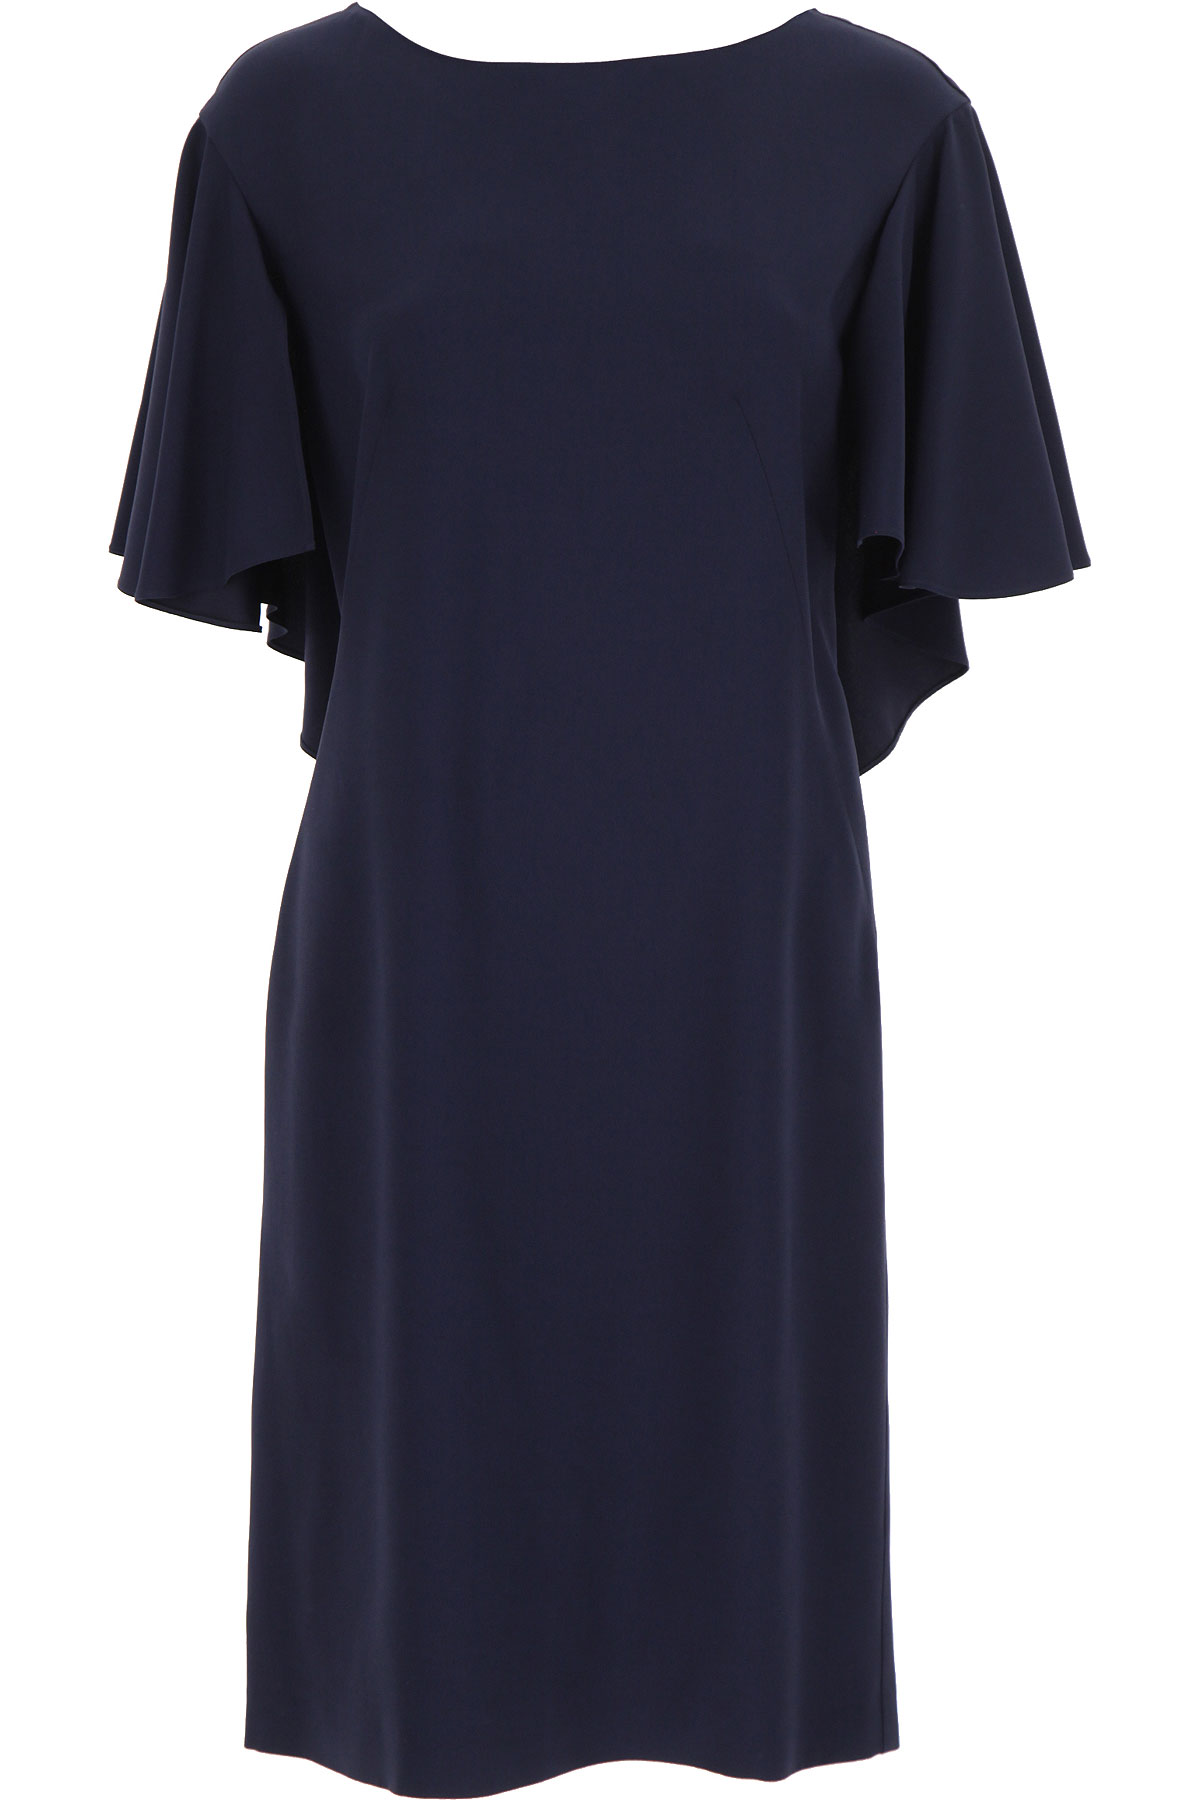 Alberta Ferretti Dress for Women, Evening Cocktail Party On Sale, Midnight Blue, acetate, 2019, 10 6 8